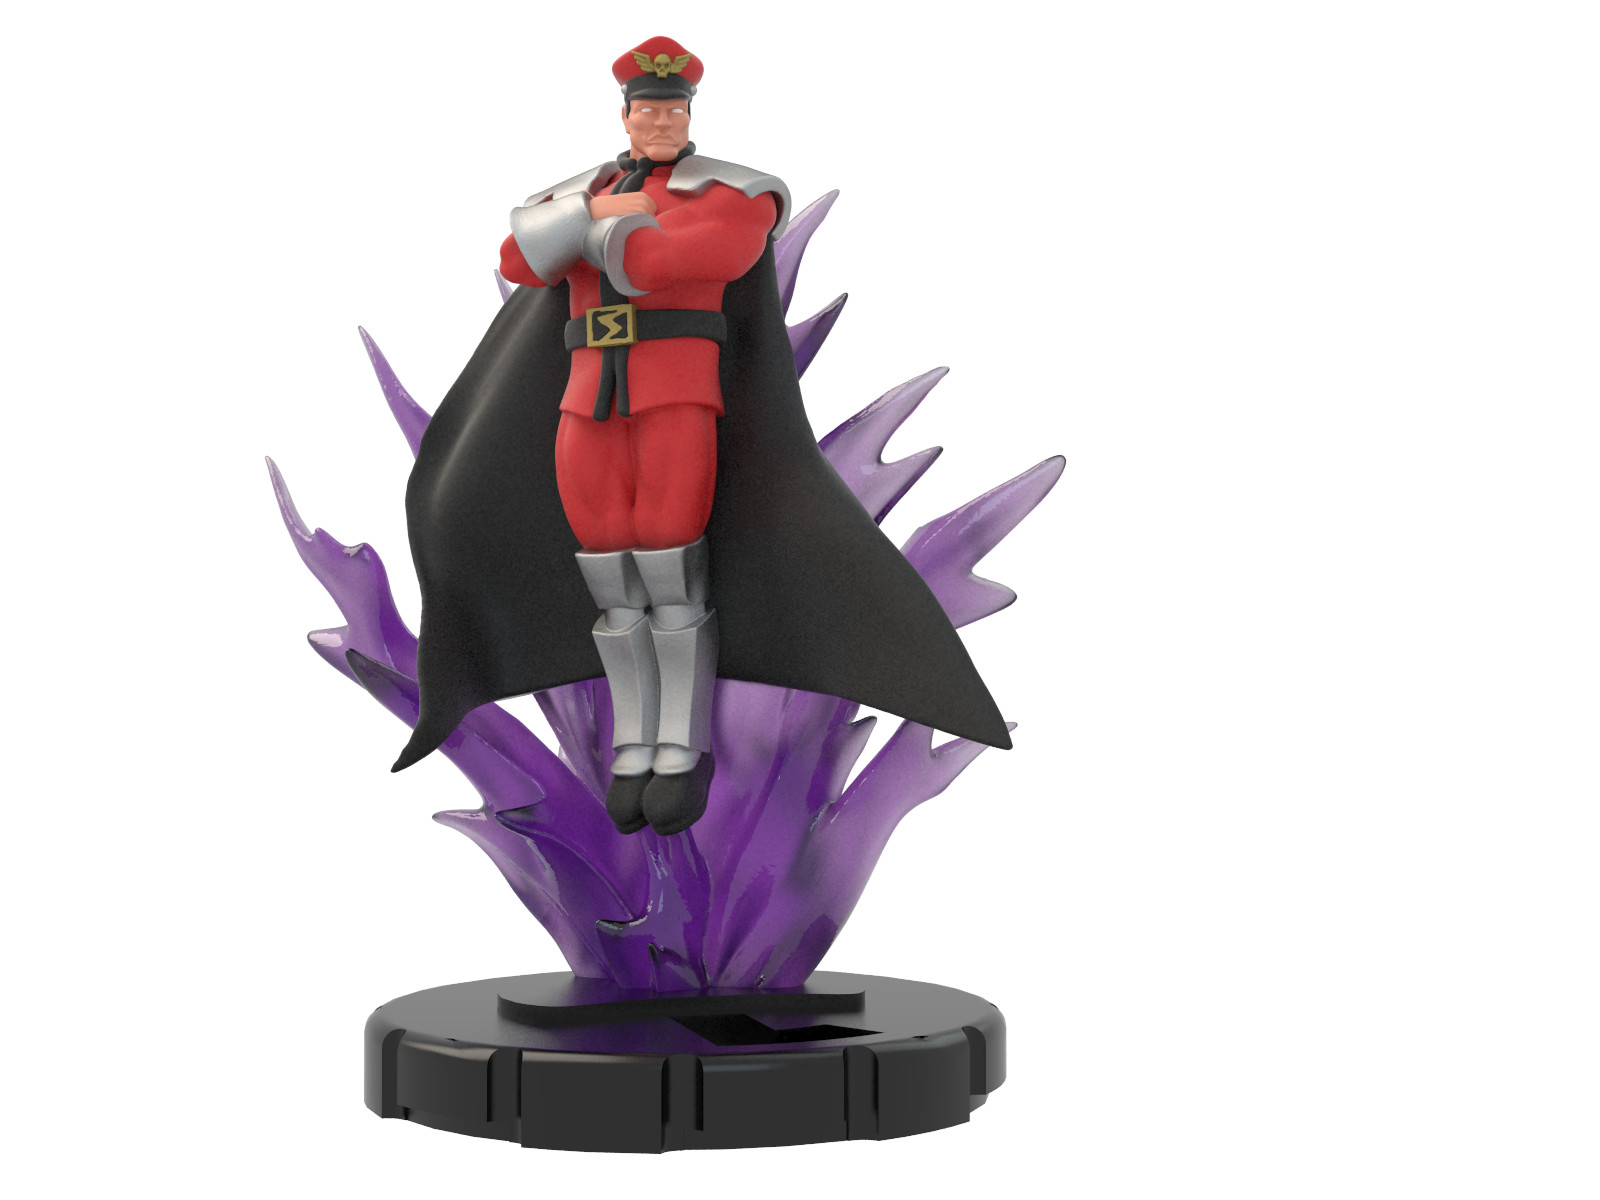 Ben misenar 008 m bison rg 1